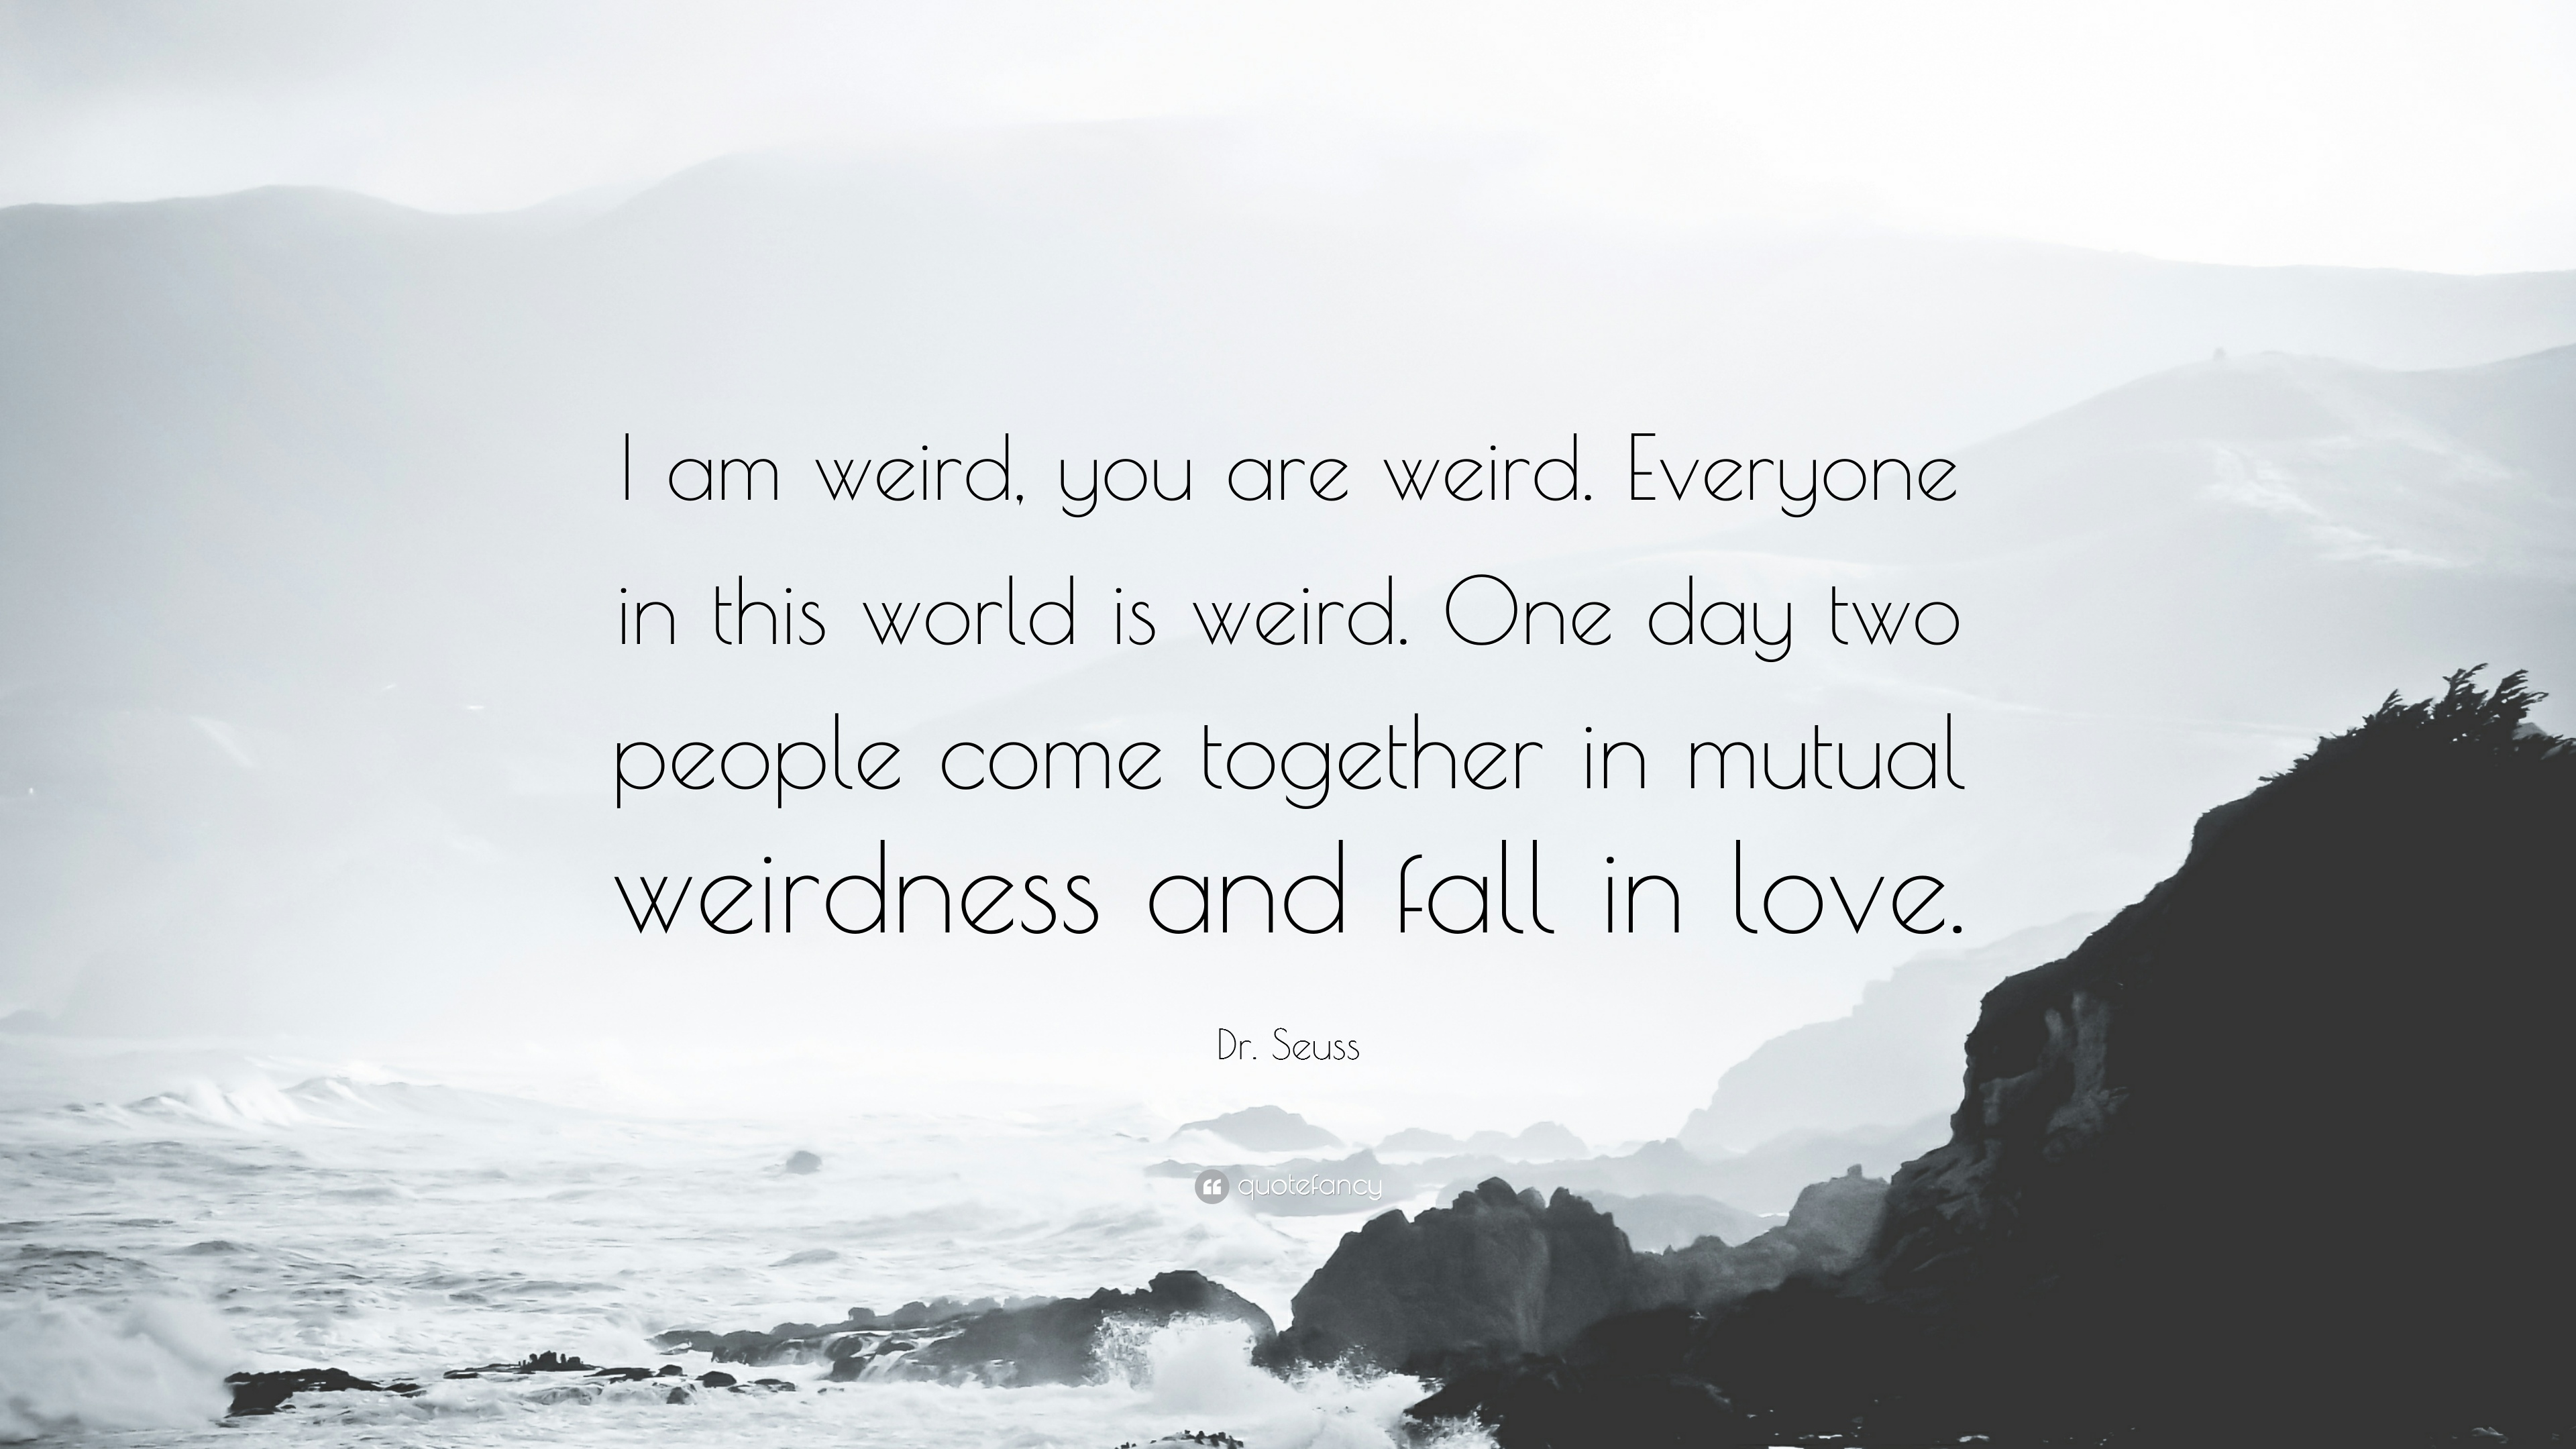 Dr Seuss Weird Love Quote Poster Valentine's Day Quotes 40 Wallpapers  Quotefancy